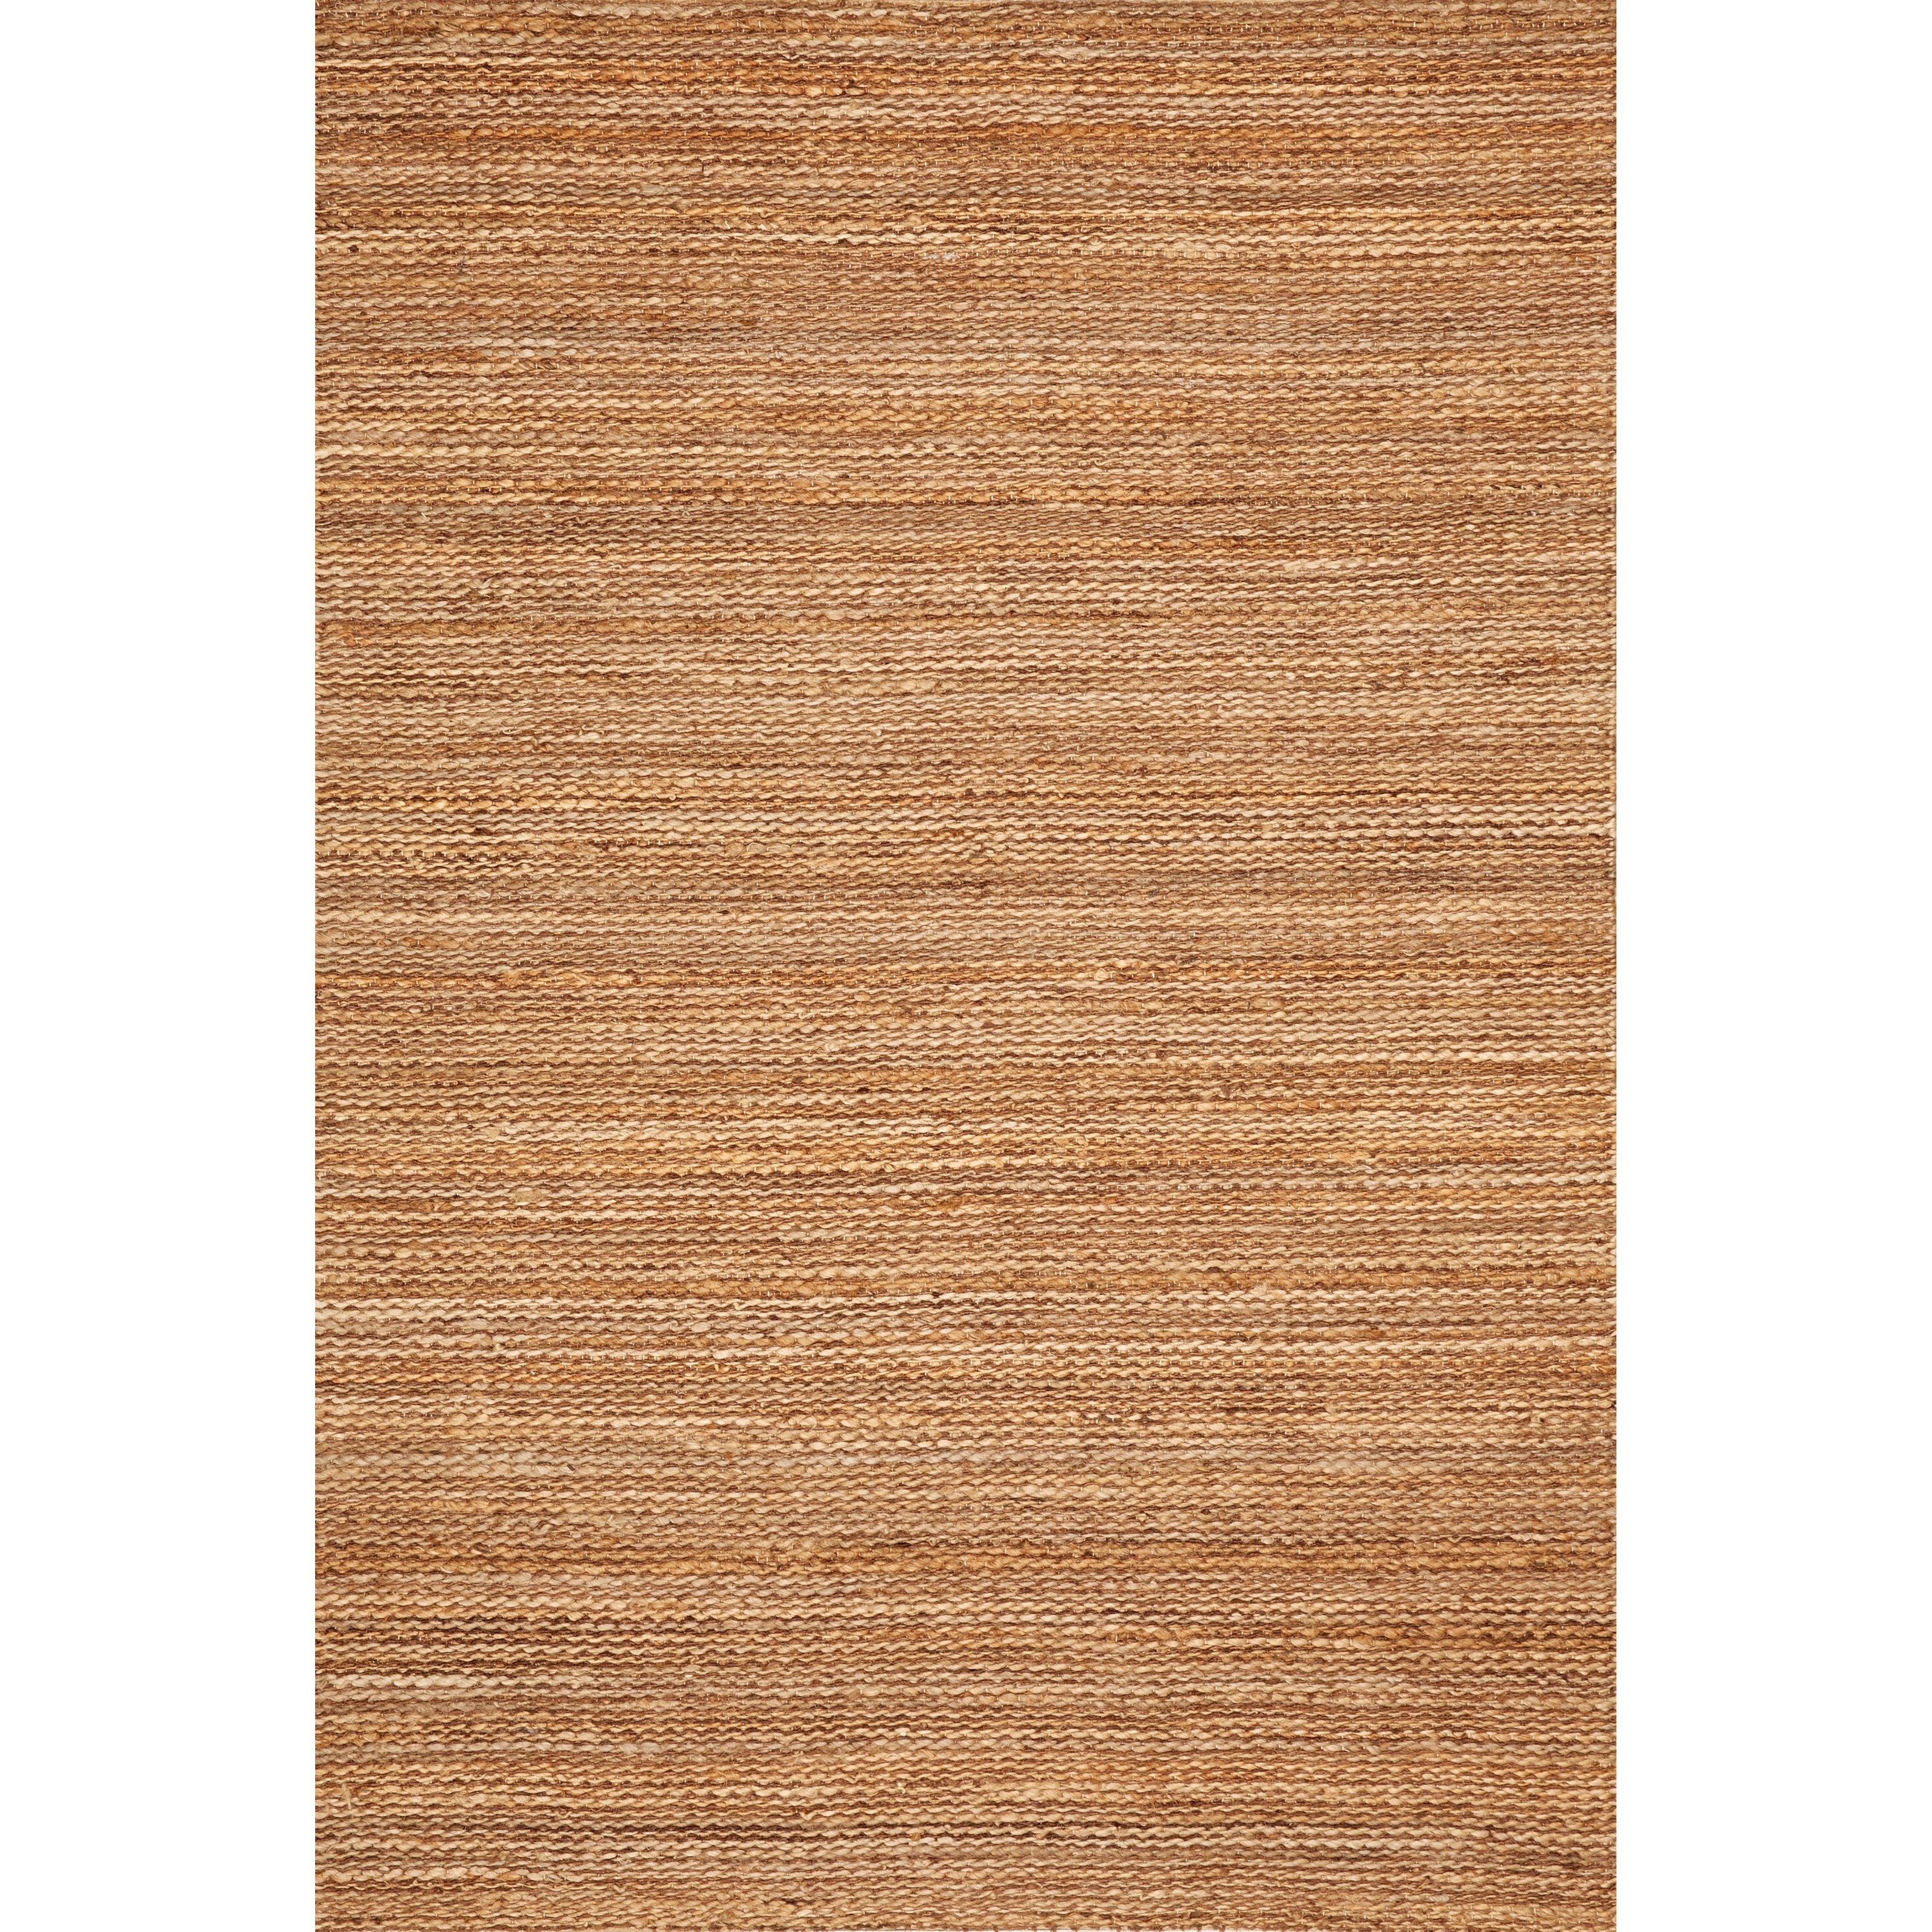 Dalyn Banyan Fudge 8'X10' Rug - Item Number: BN100FU8X10